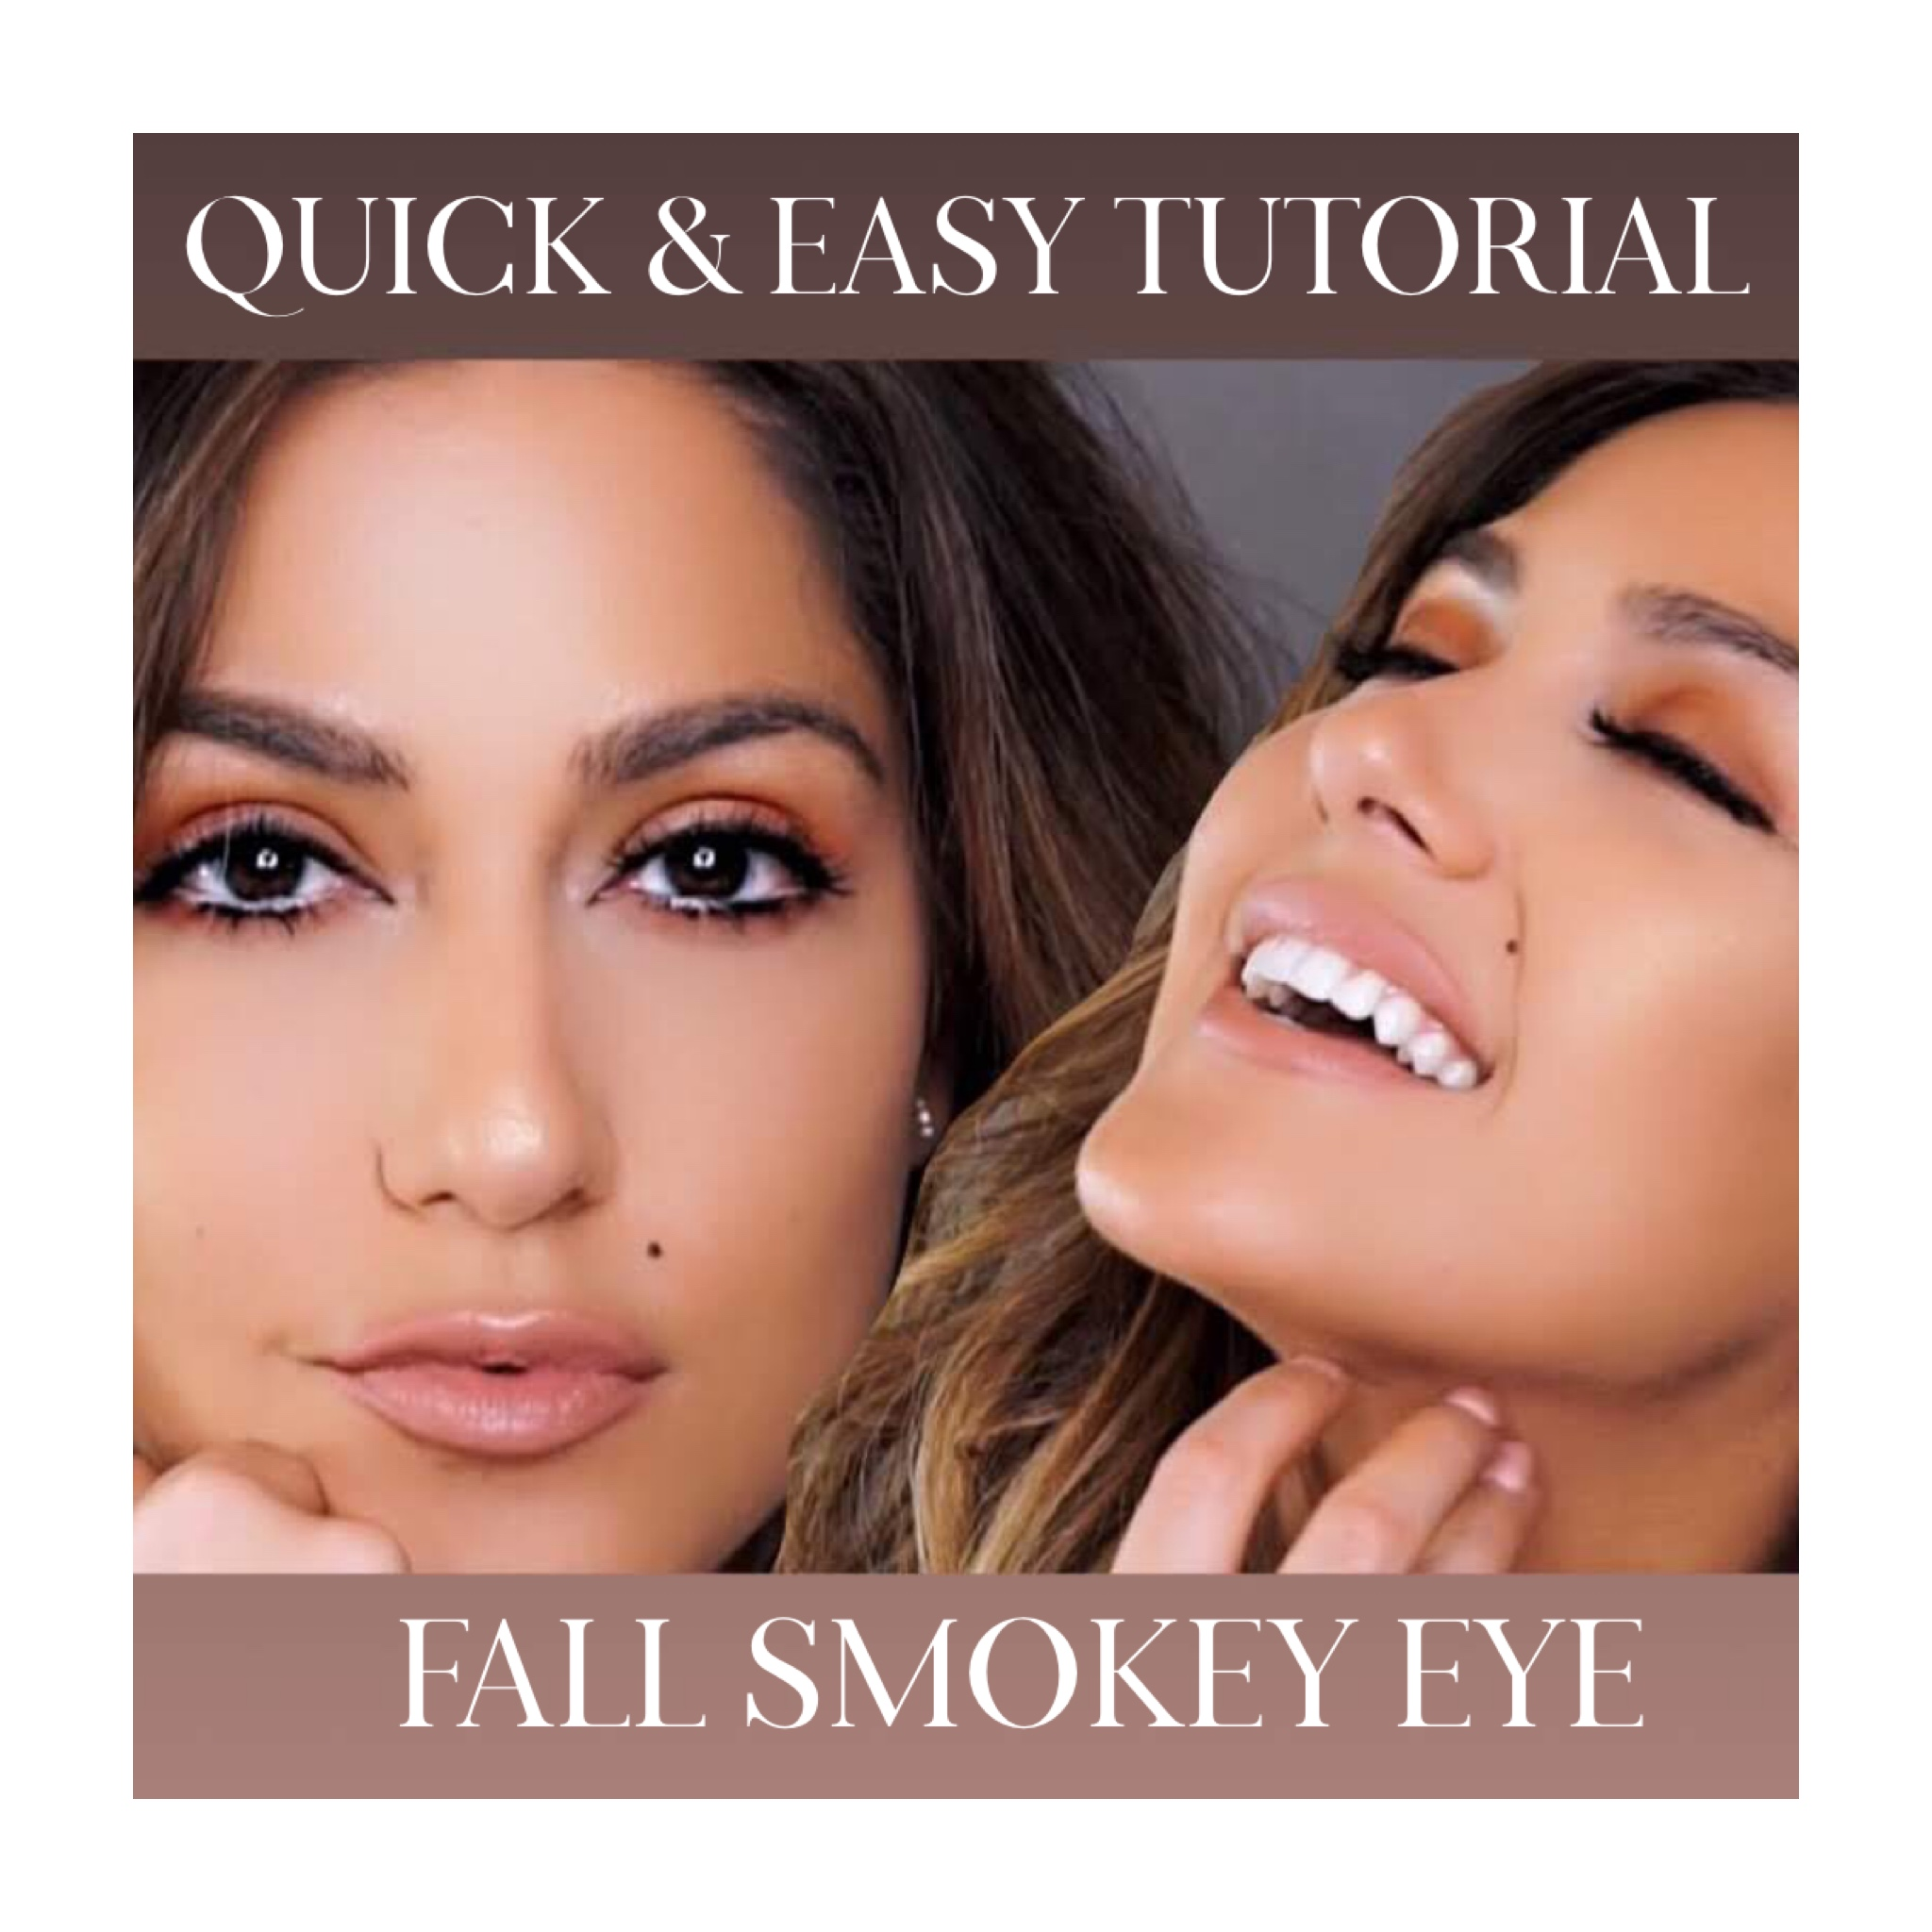 QUICK & EASY FALL SMOKEY EYE FOR FALL